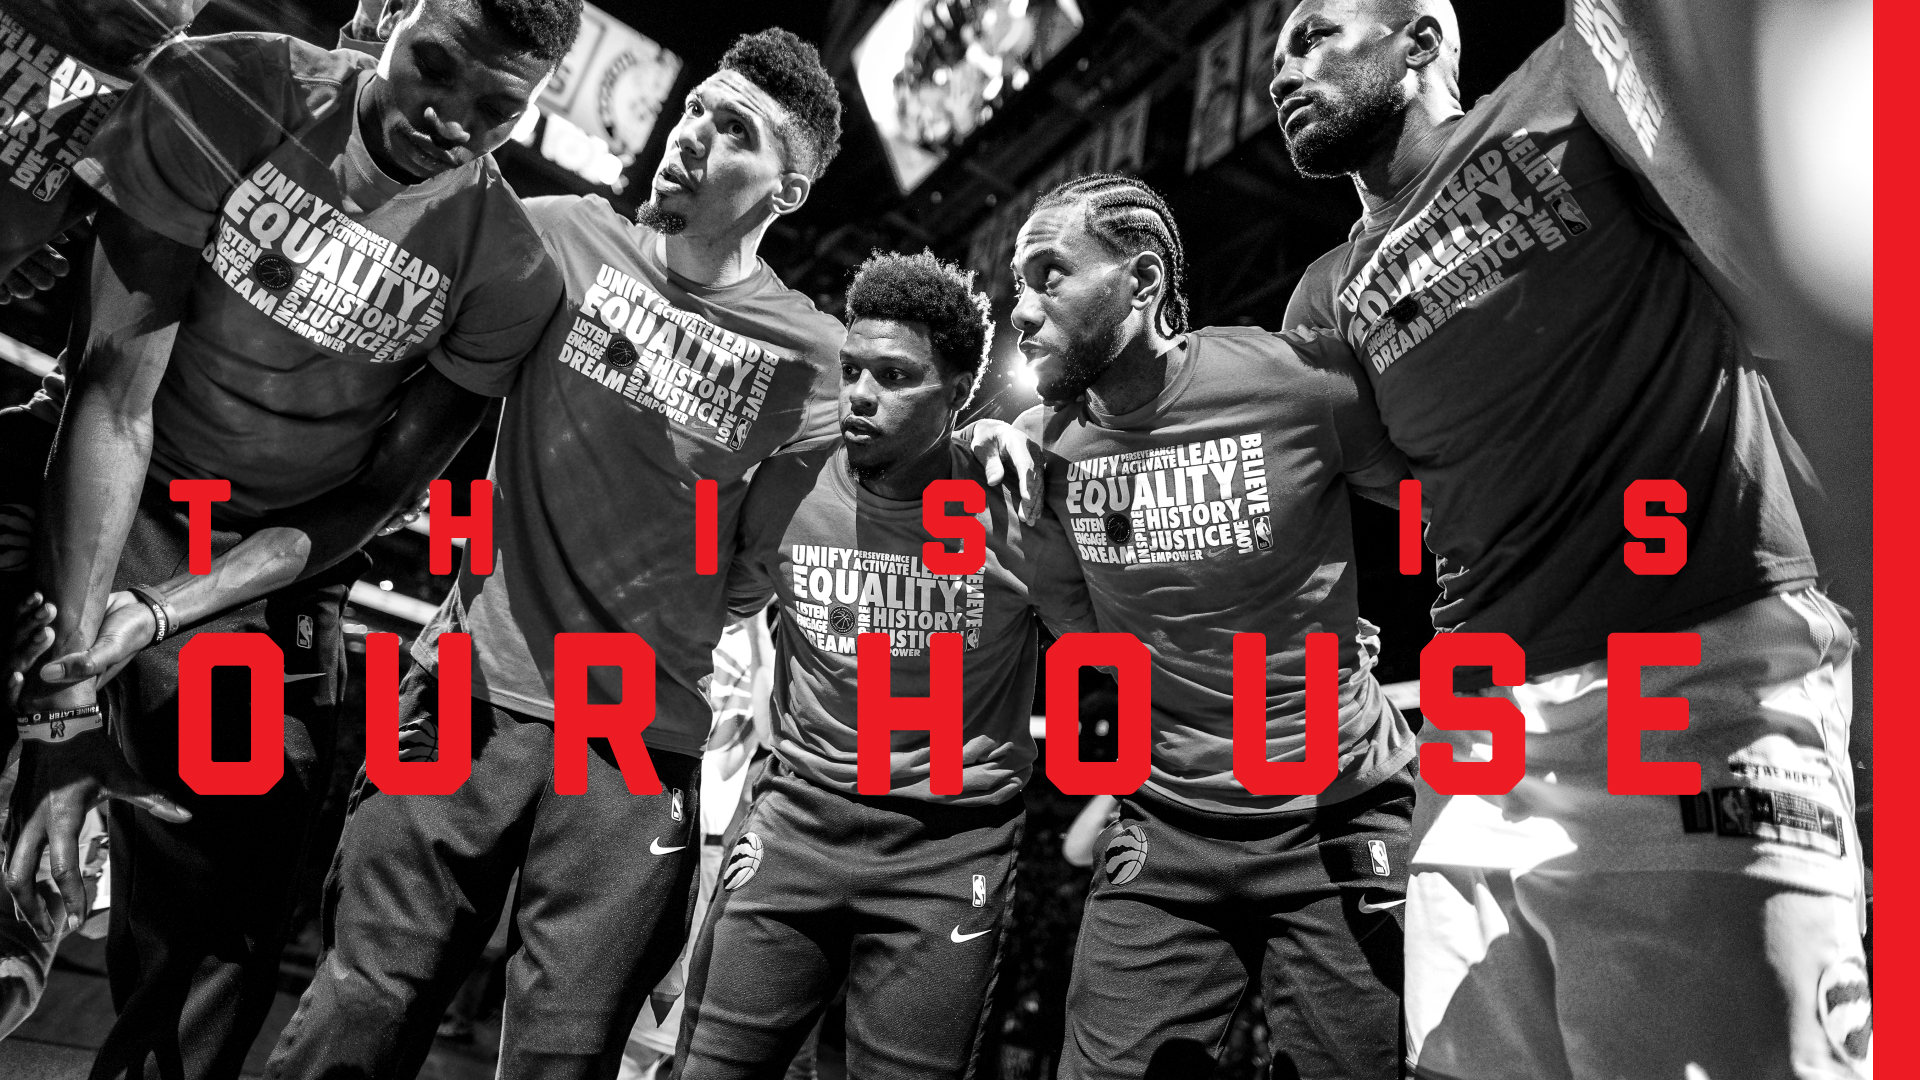 THIS_IS_OUR_HOUSE.jpg